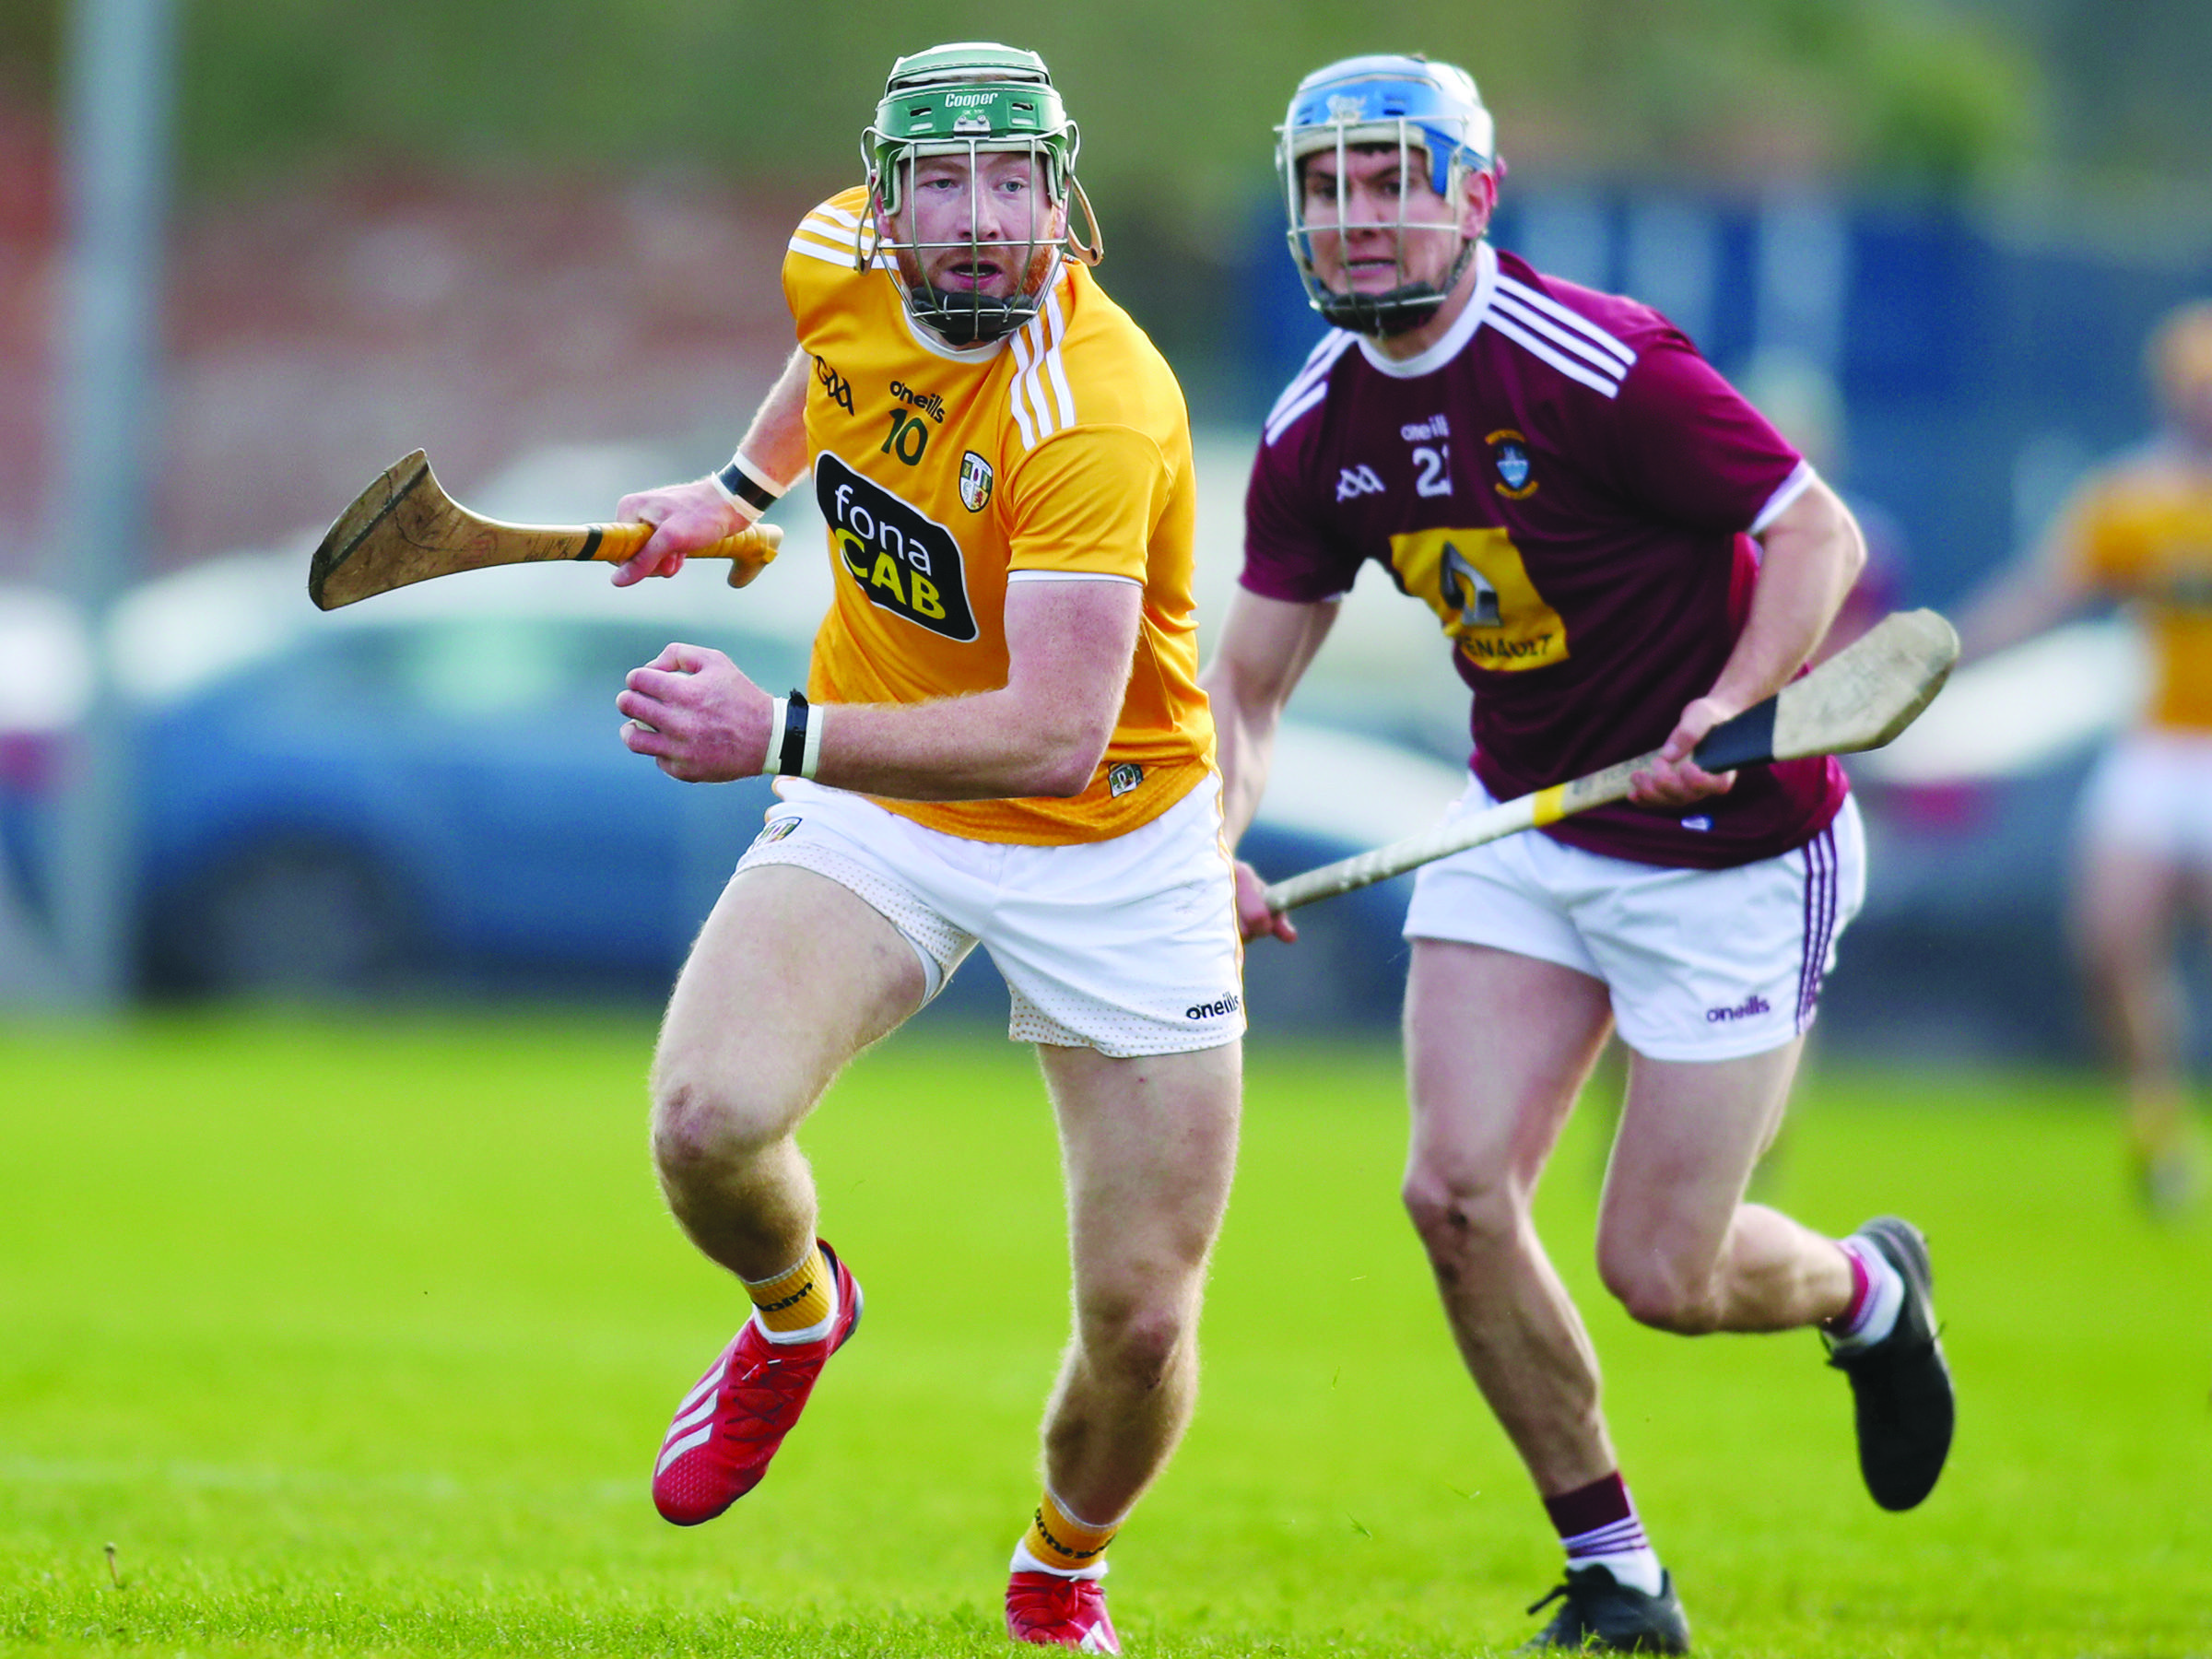 The 19-point win overt Westmeath saw Antrim's hurlers deliver a statement of intent, but they must back it up in the coming games if they want to reach Croke Park on All-Ireland final day